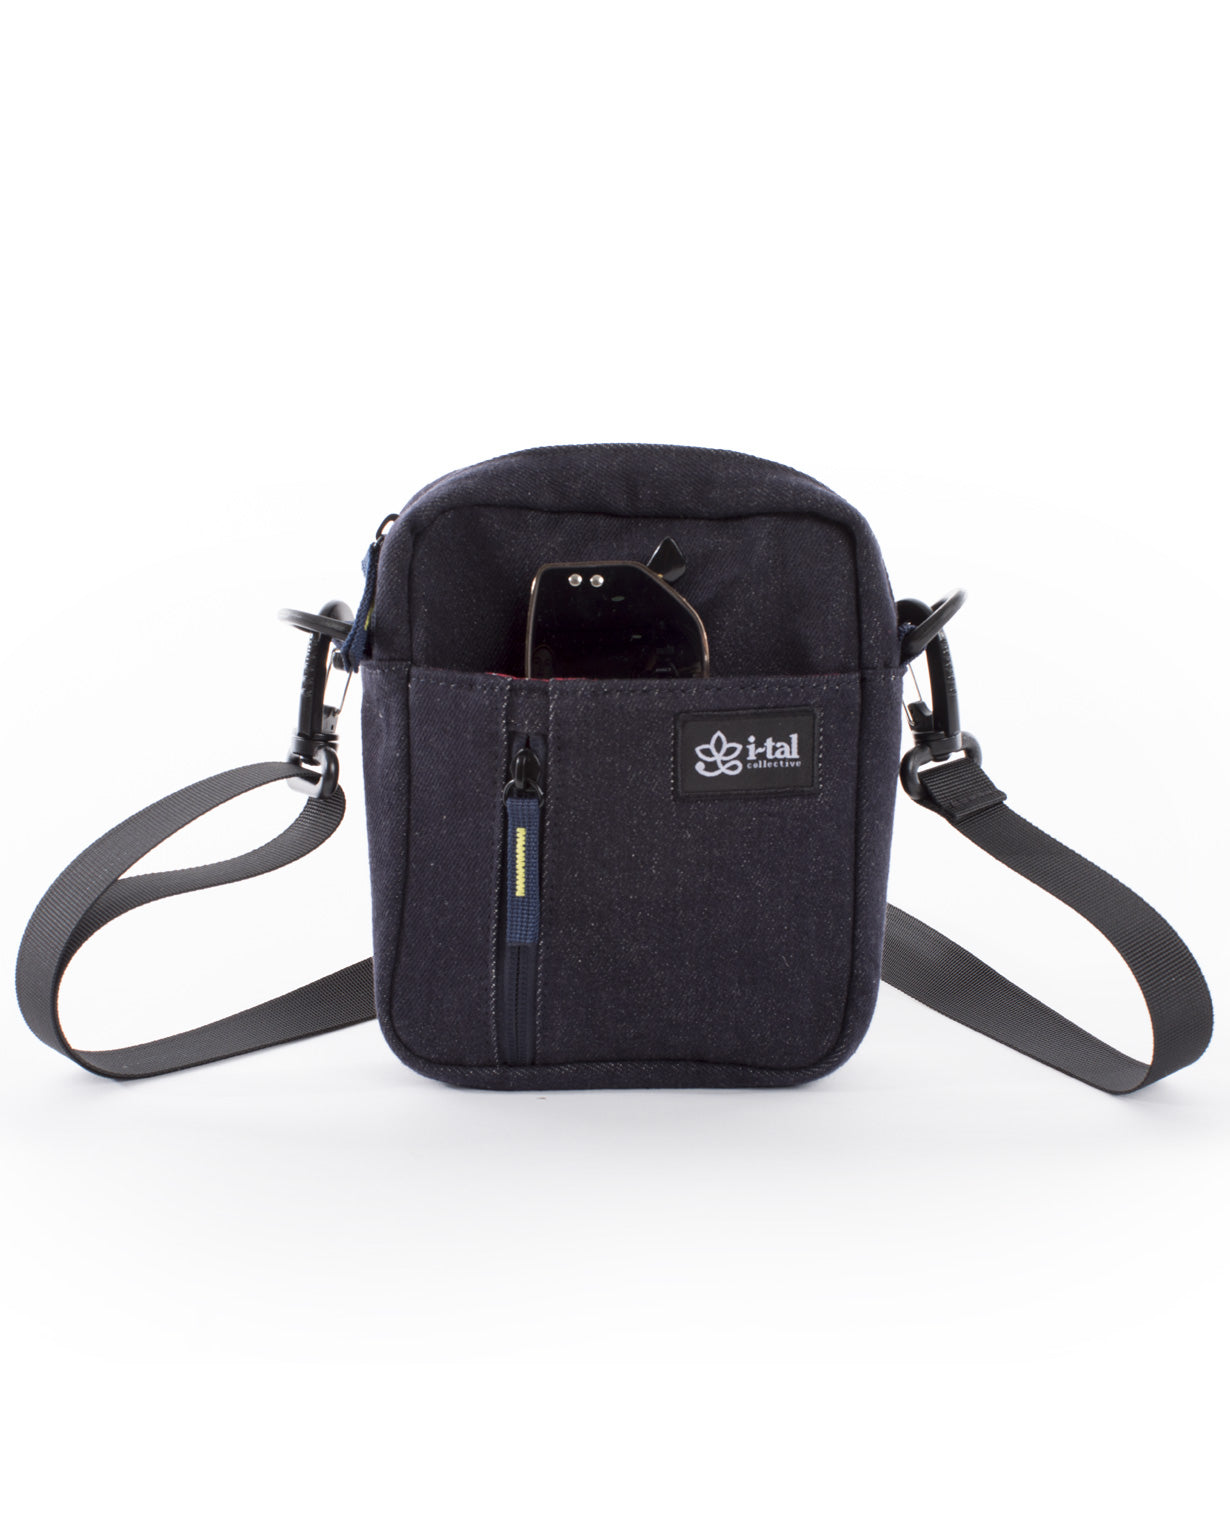 Essential Bag Indigo Blue - Bolso Orgánico